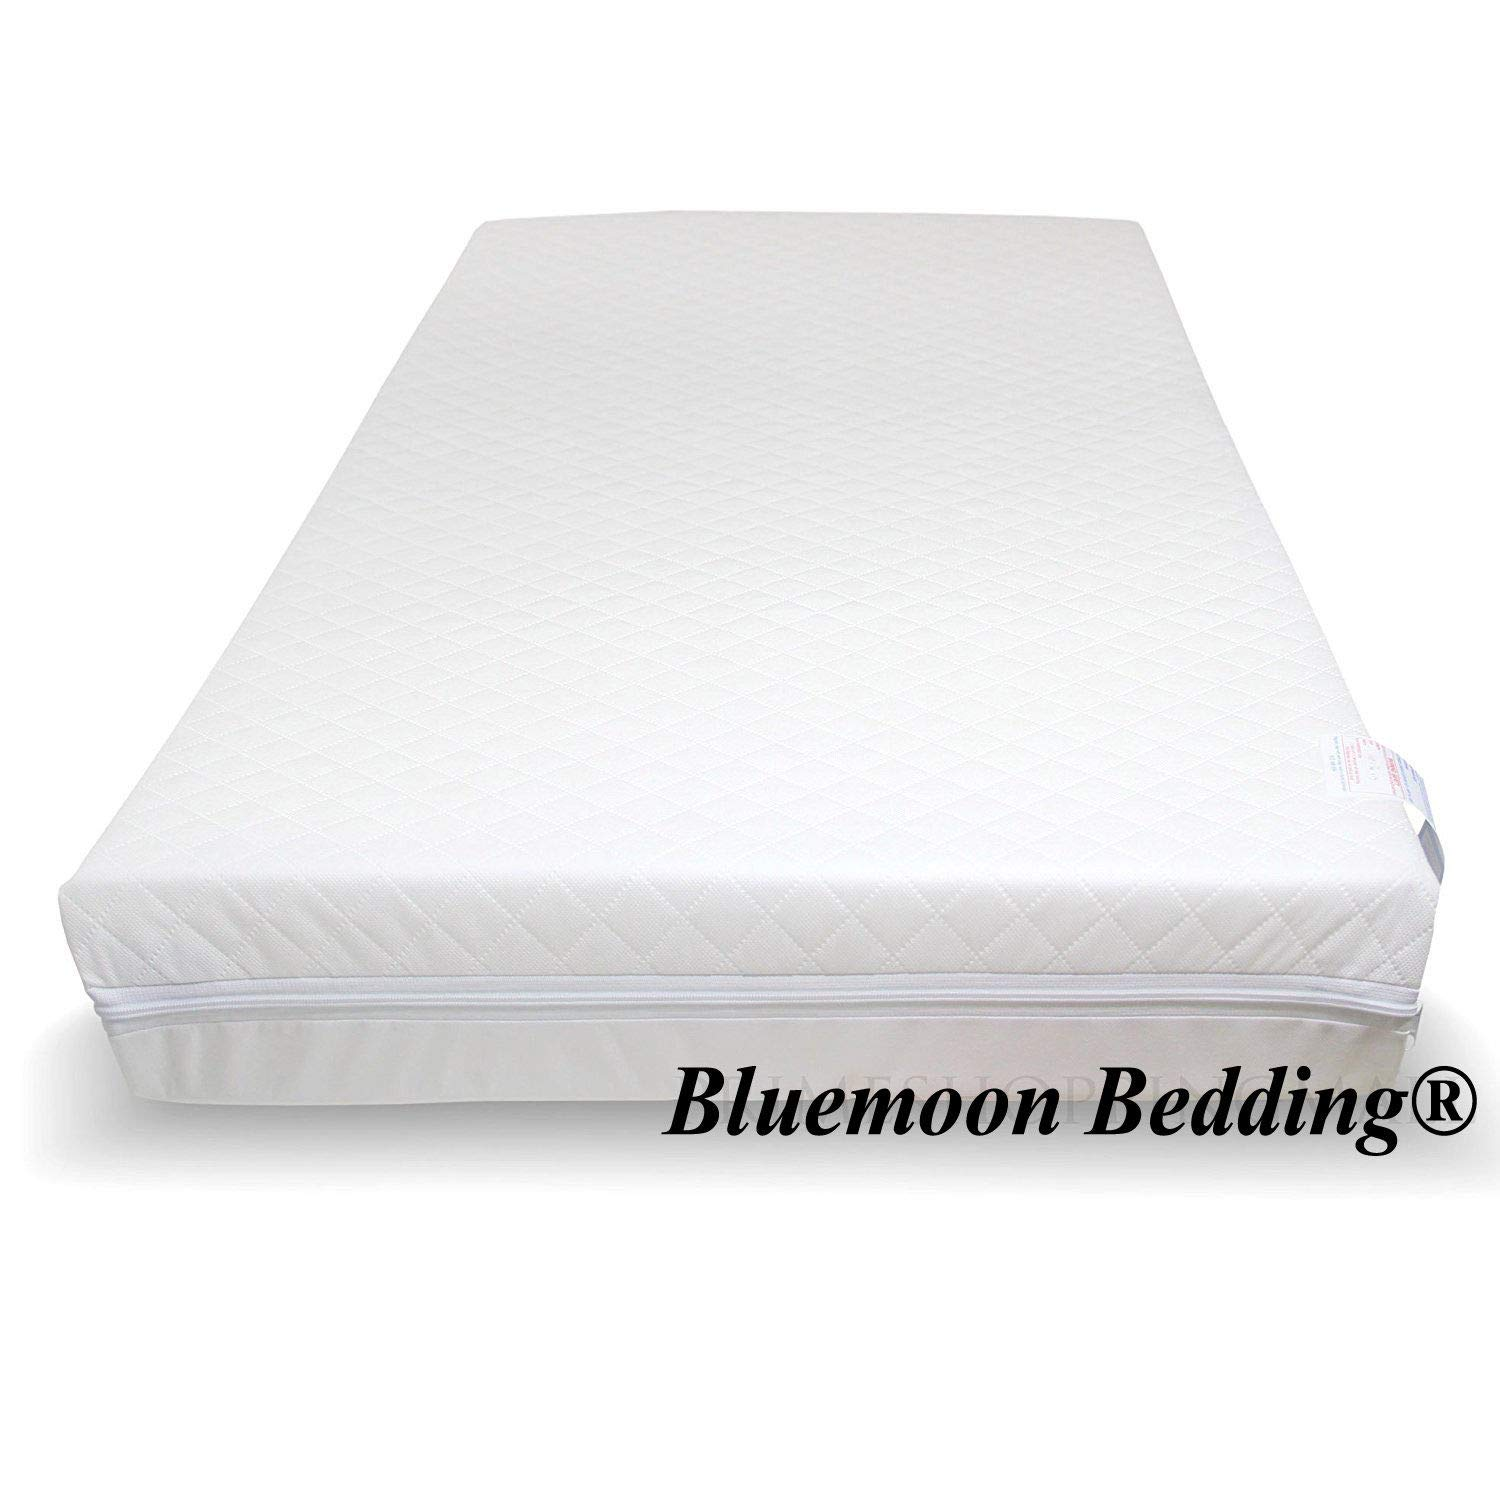 95x65x13 cm ALL SIZES QUILTED BABY COT BED//TODDLER MATTRESSES BREATHABLE /& WATERPROOF